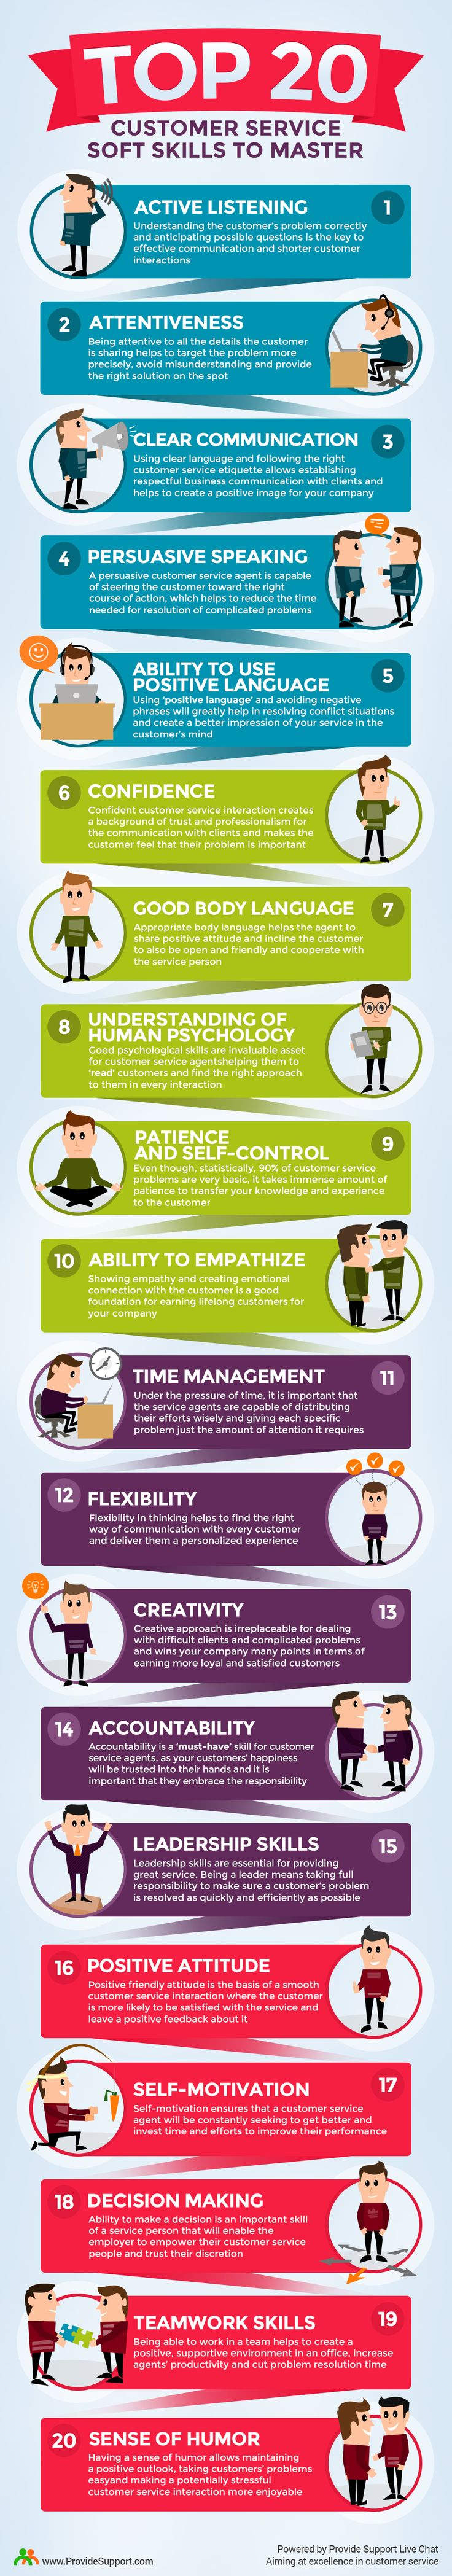 Top 20 Customer Service Soft Skills to Master (Infographic): http://www.providesupport.com/blog/top-20-customer-service-soft-skills-infographic/ #customerservice #infographics